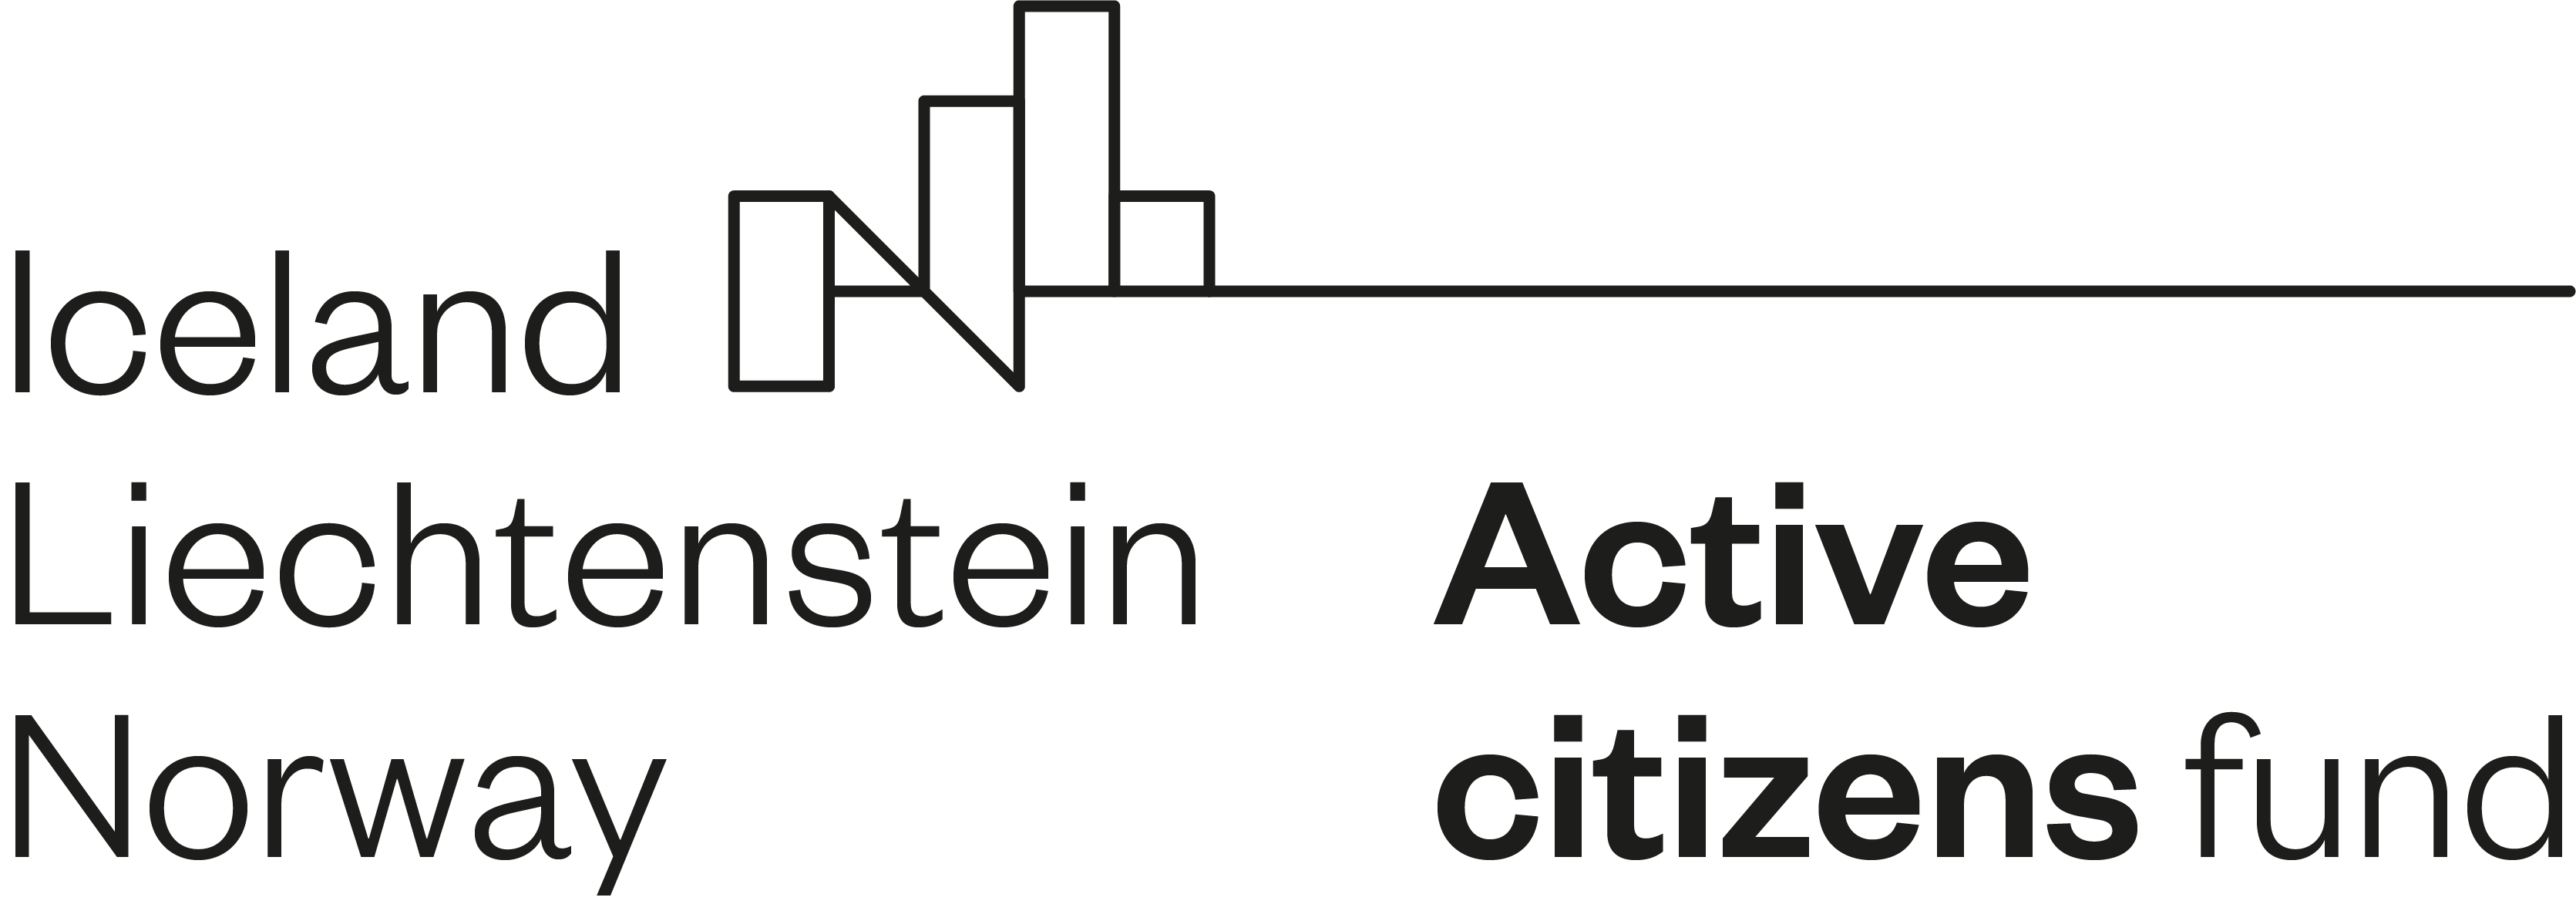 Logo Active Citizens Fund. Napis: Iceland, Liechtenstein, Norway. Active citizens fund.